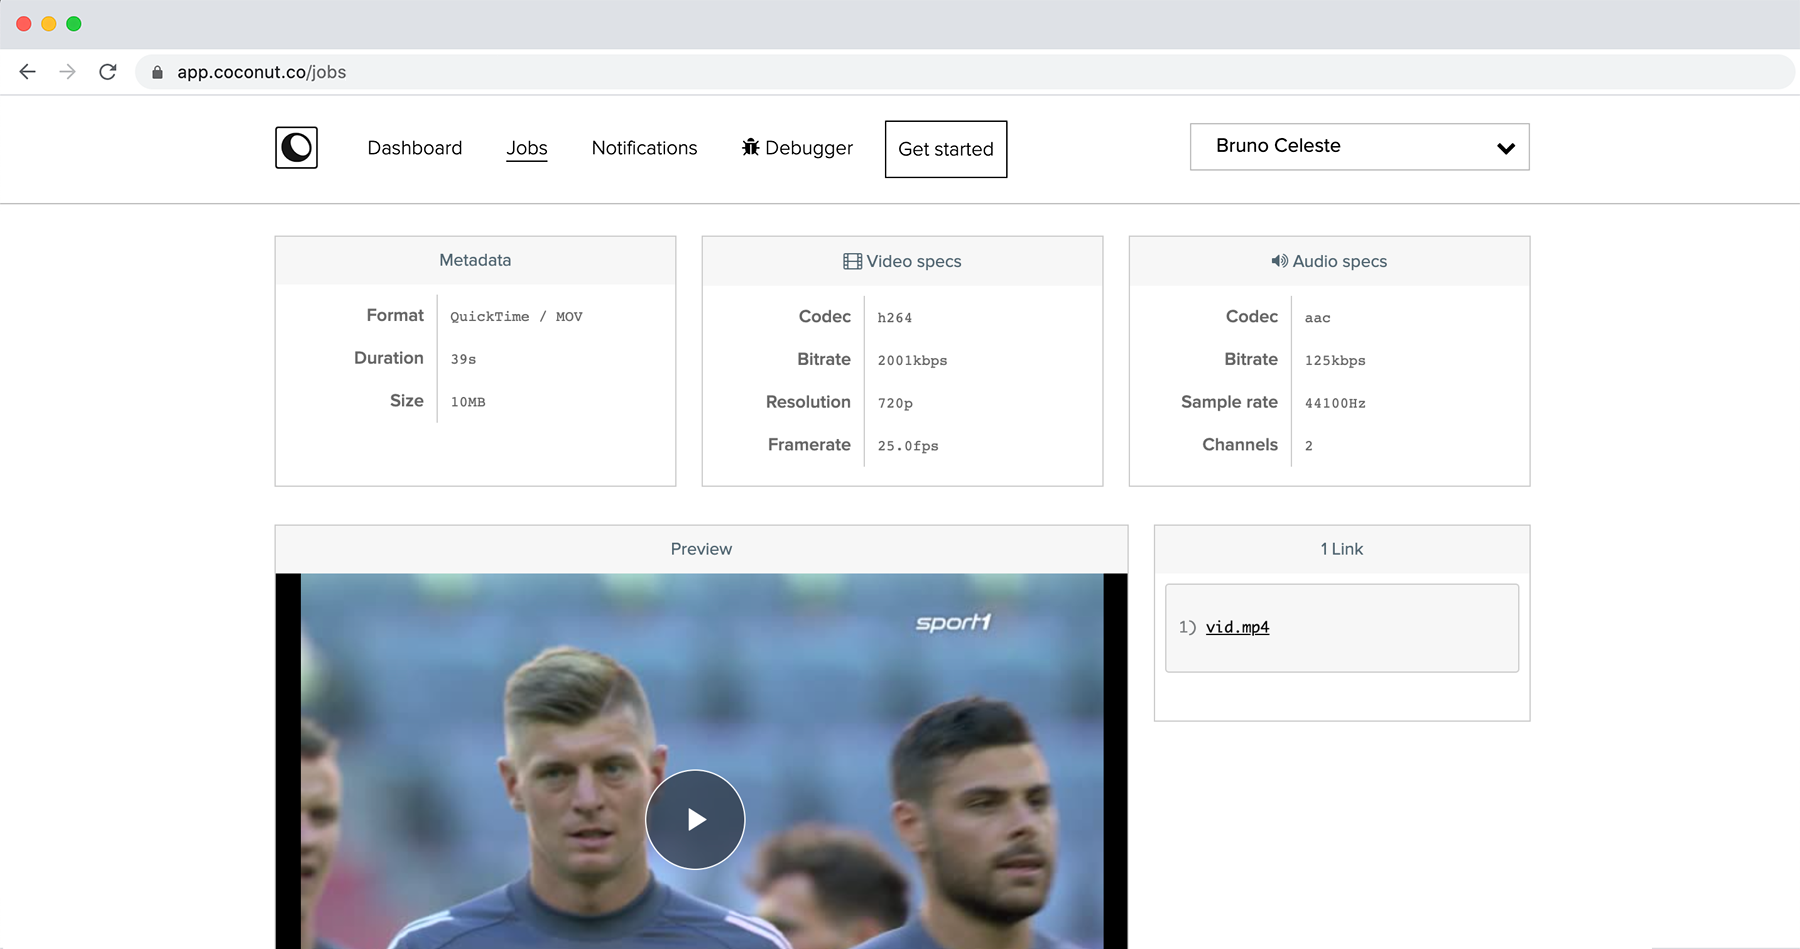 Job's preview page